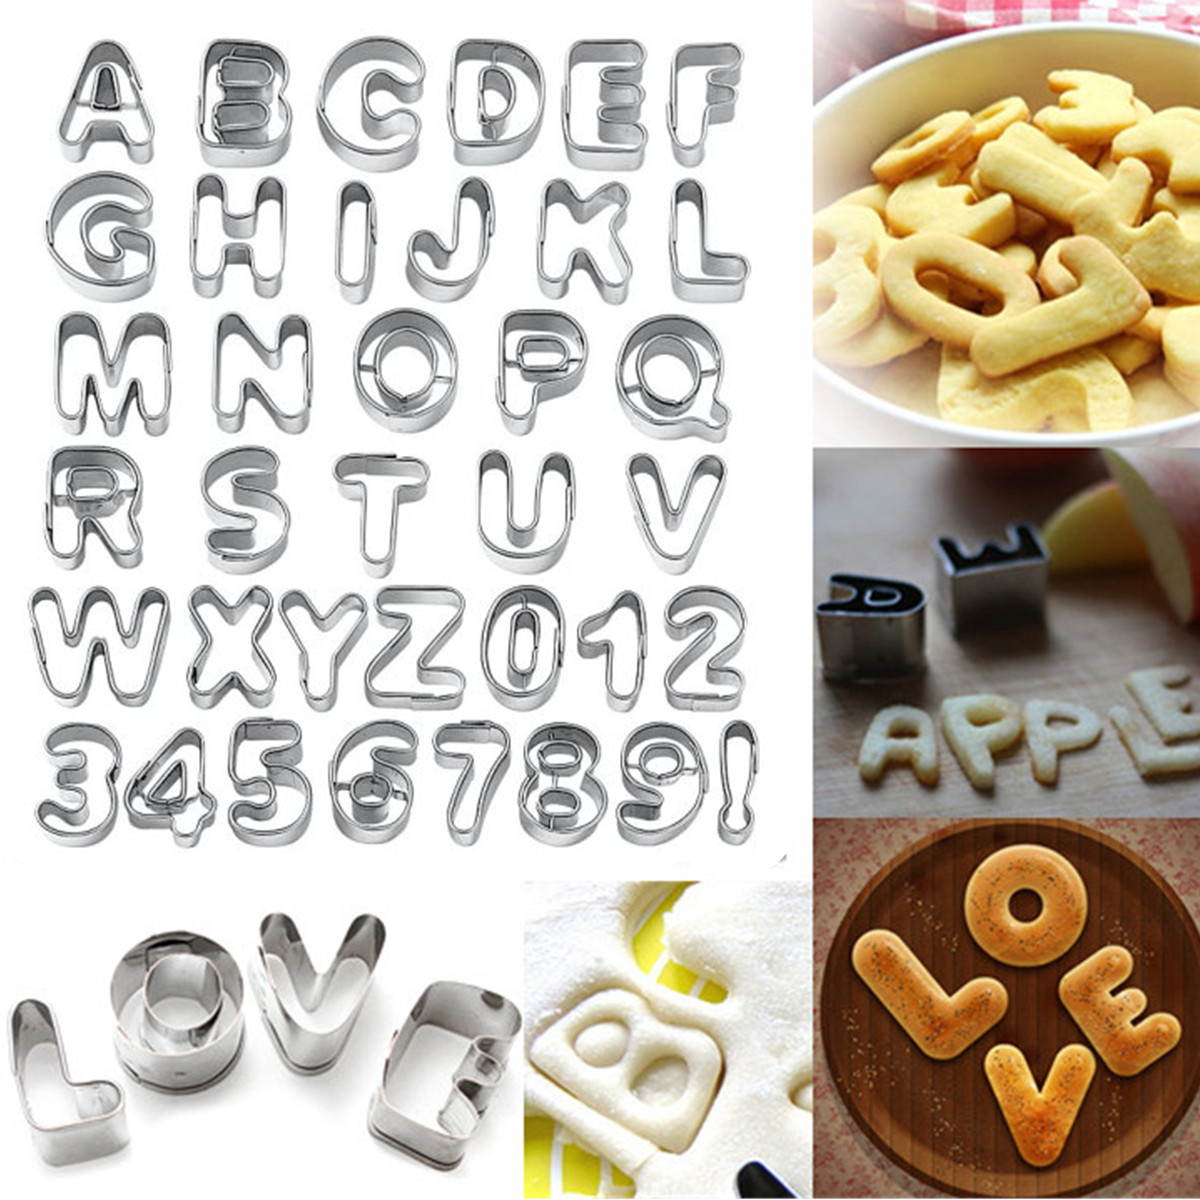 emporte pi ce alphabet chiffre lettre moule gateau patisserie p te 9 styles ebay. Black Bedroom Furniture Sets. Home Design Ideas